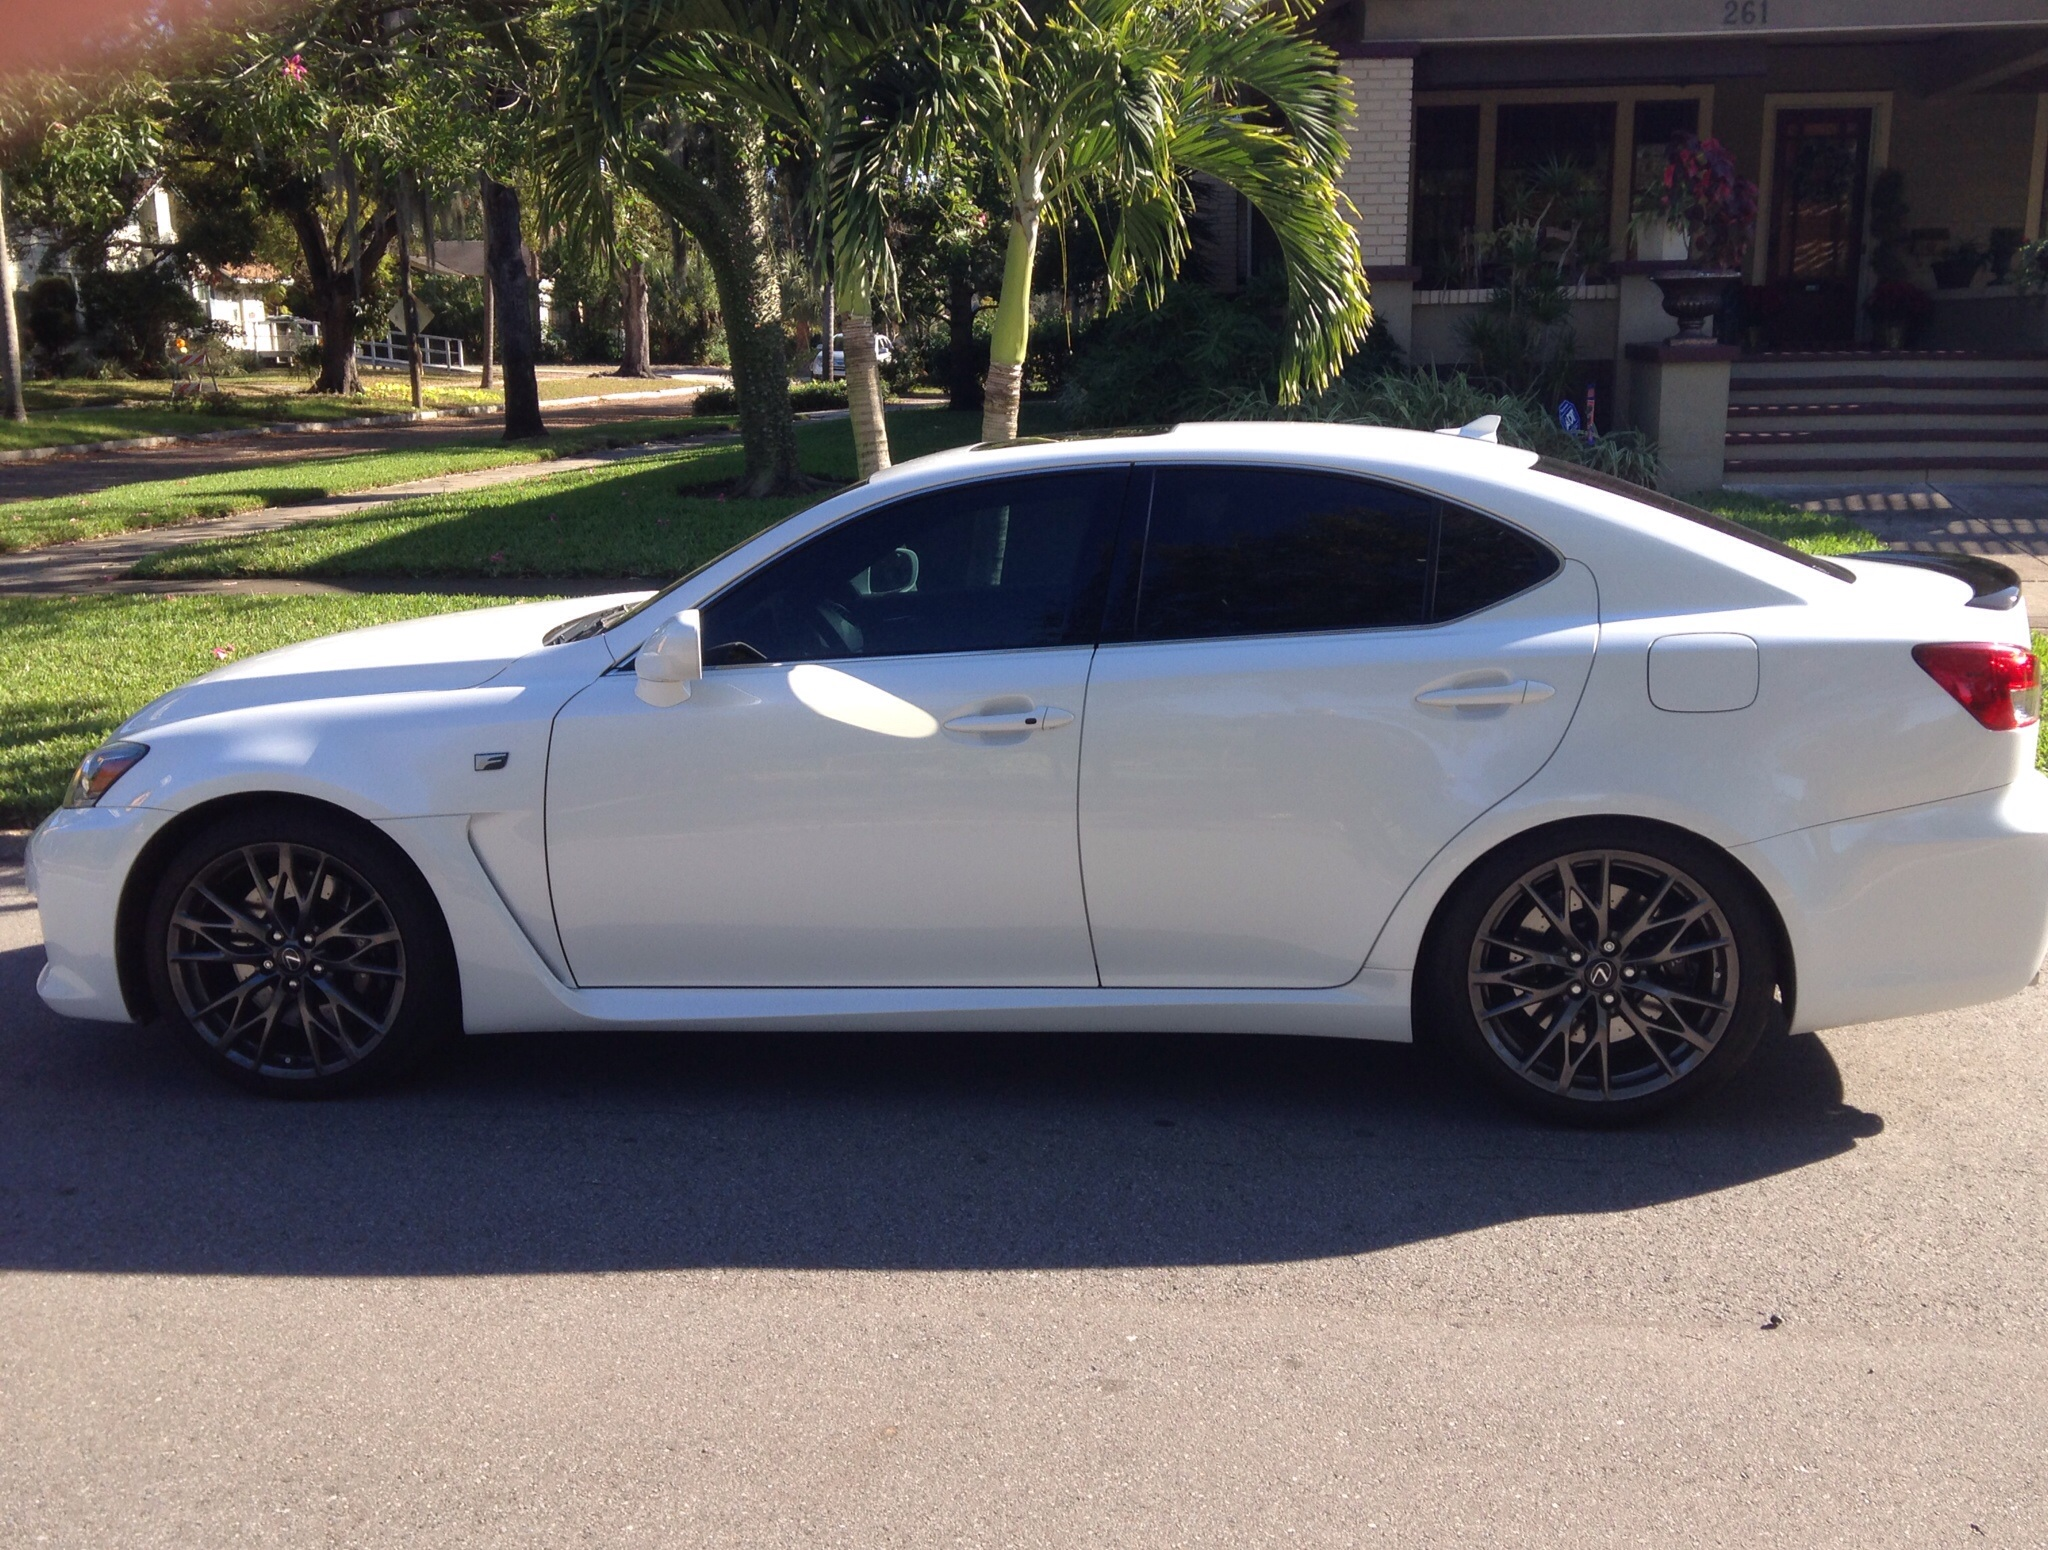 Captivating Lexus Is F 2011 Pictures #15